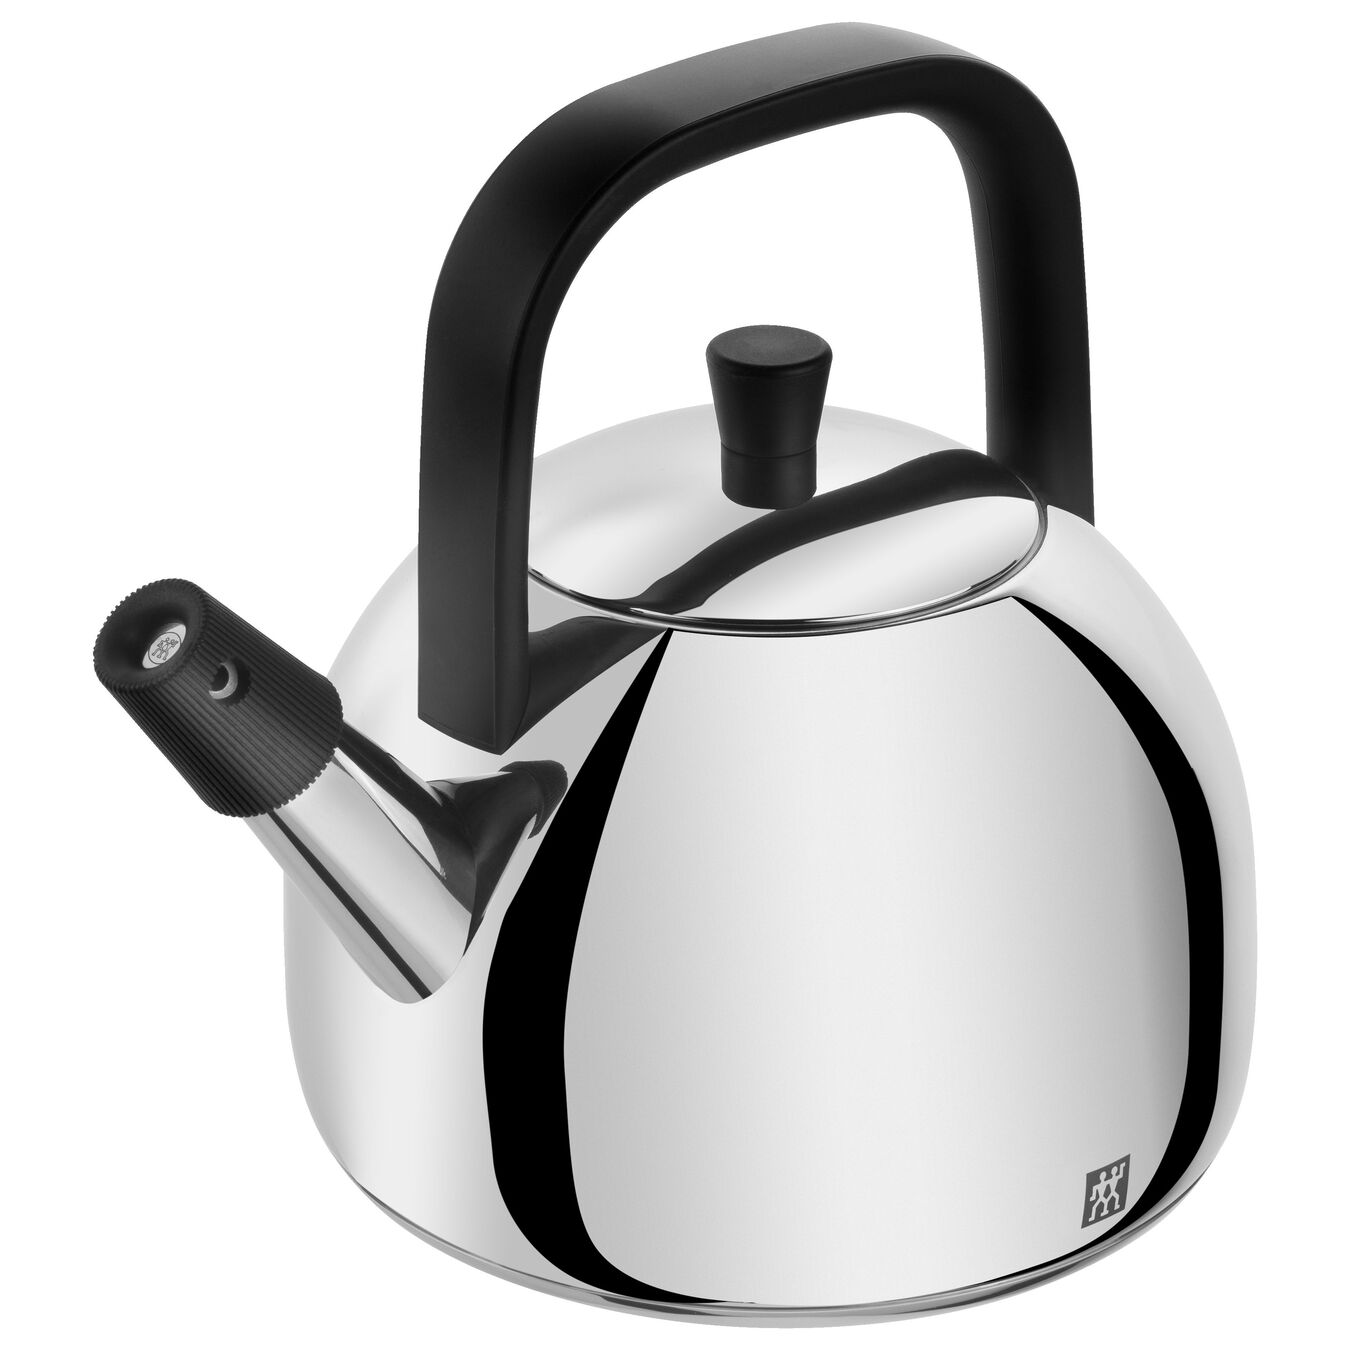 1.6 l 18/10 Stainless Steel Kettle,,large 1